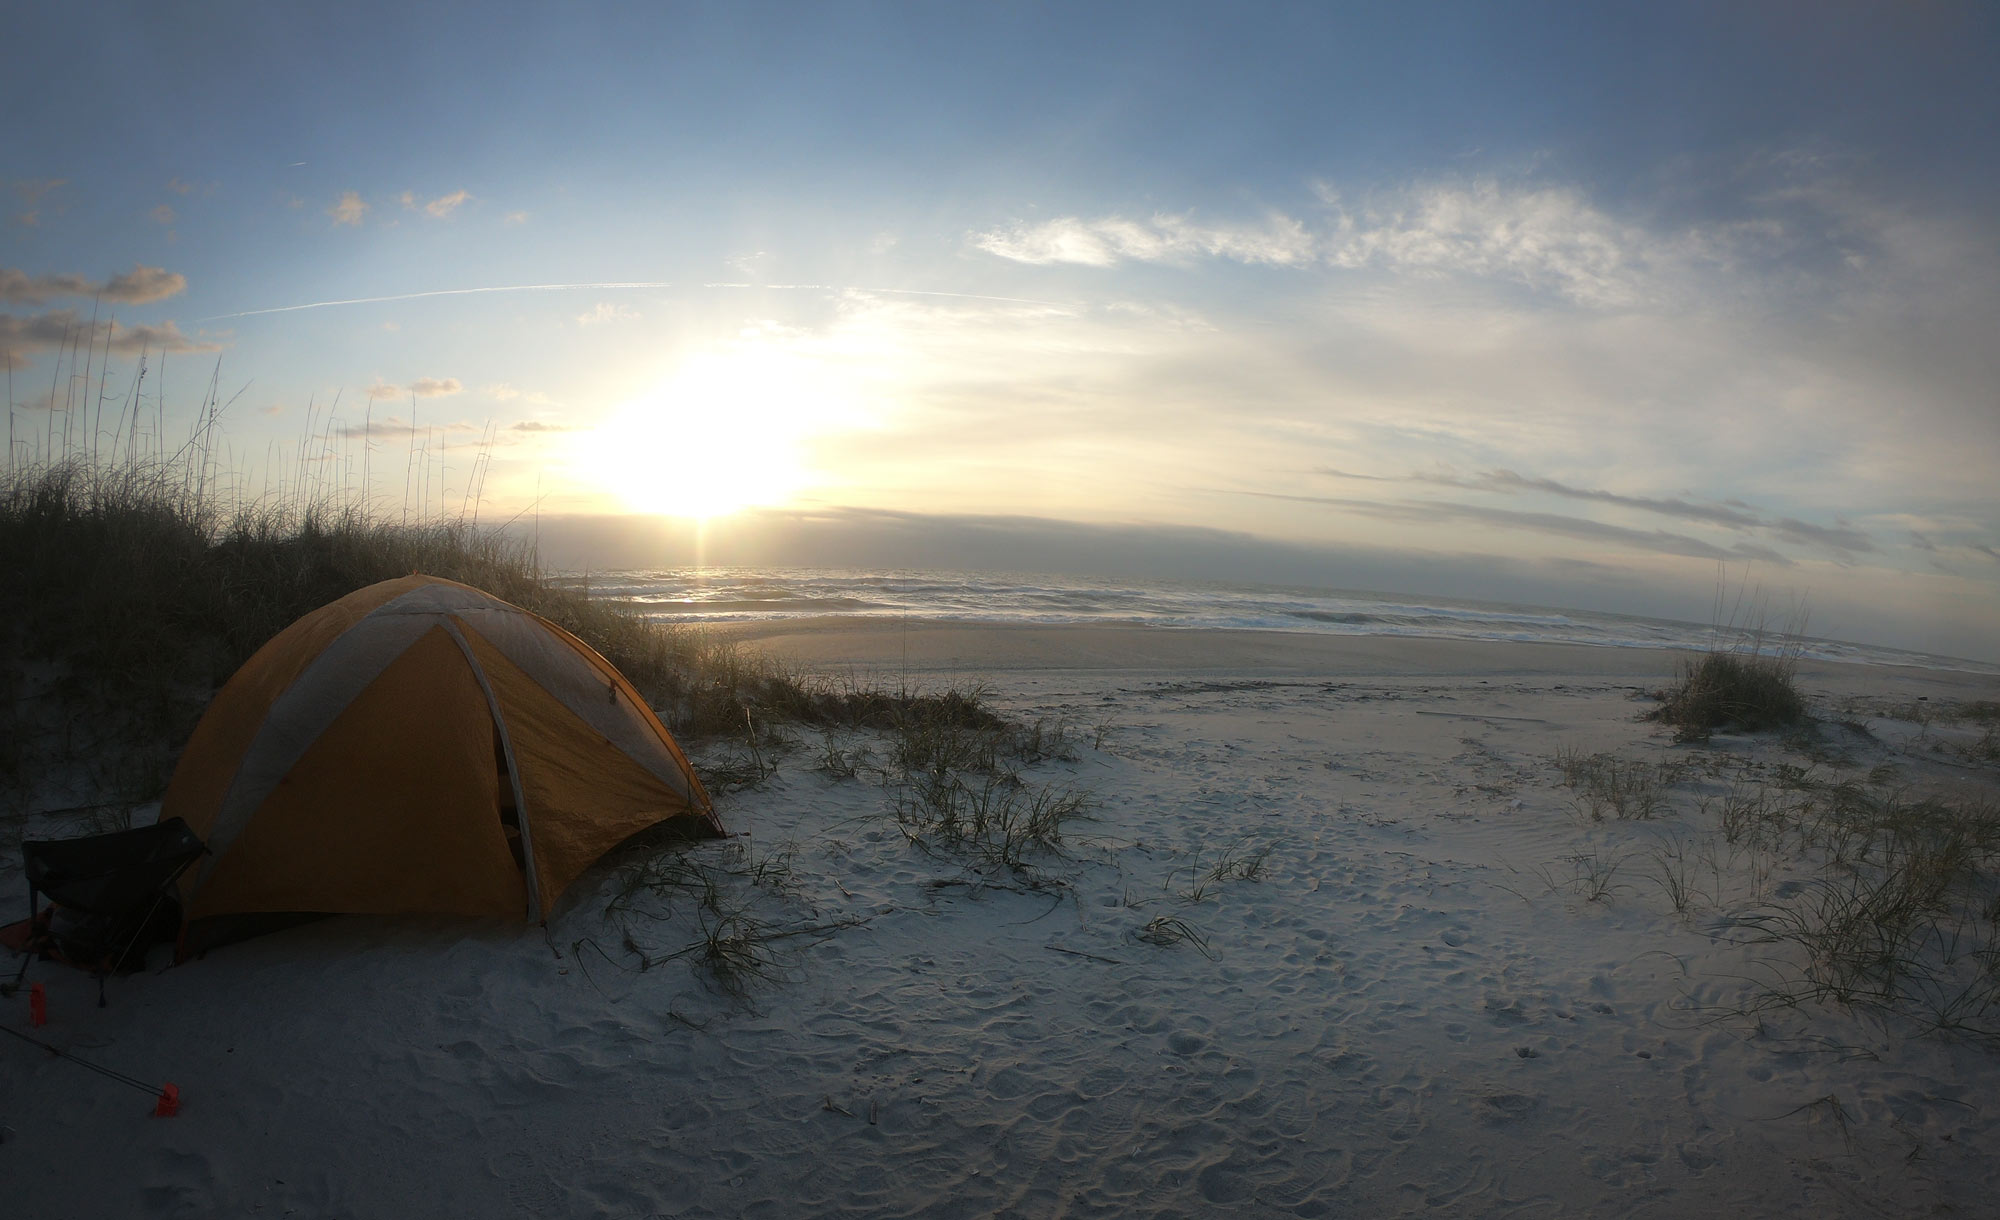 Camping on Masonboro Island, North Carolina